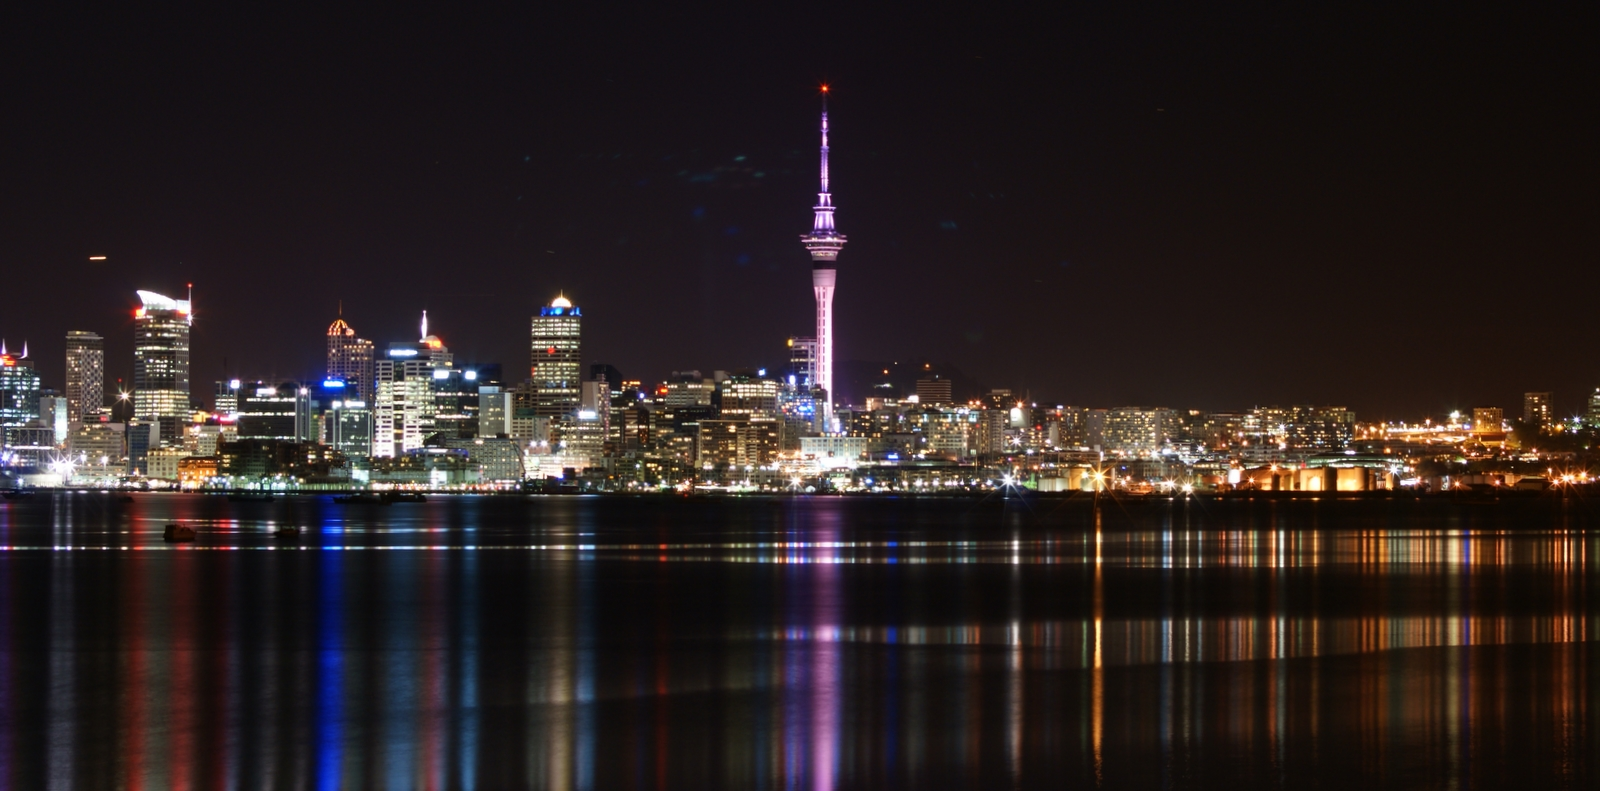 File:Auckland City ^ Skytower at night - Flickr - 111 ...